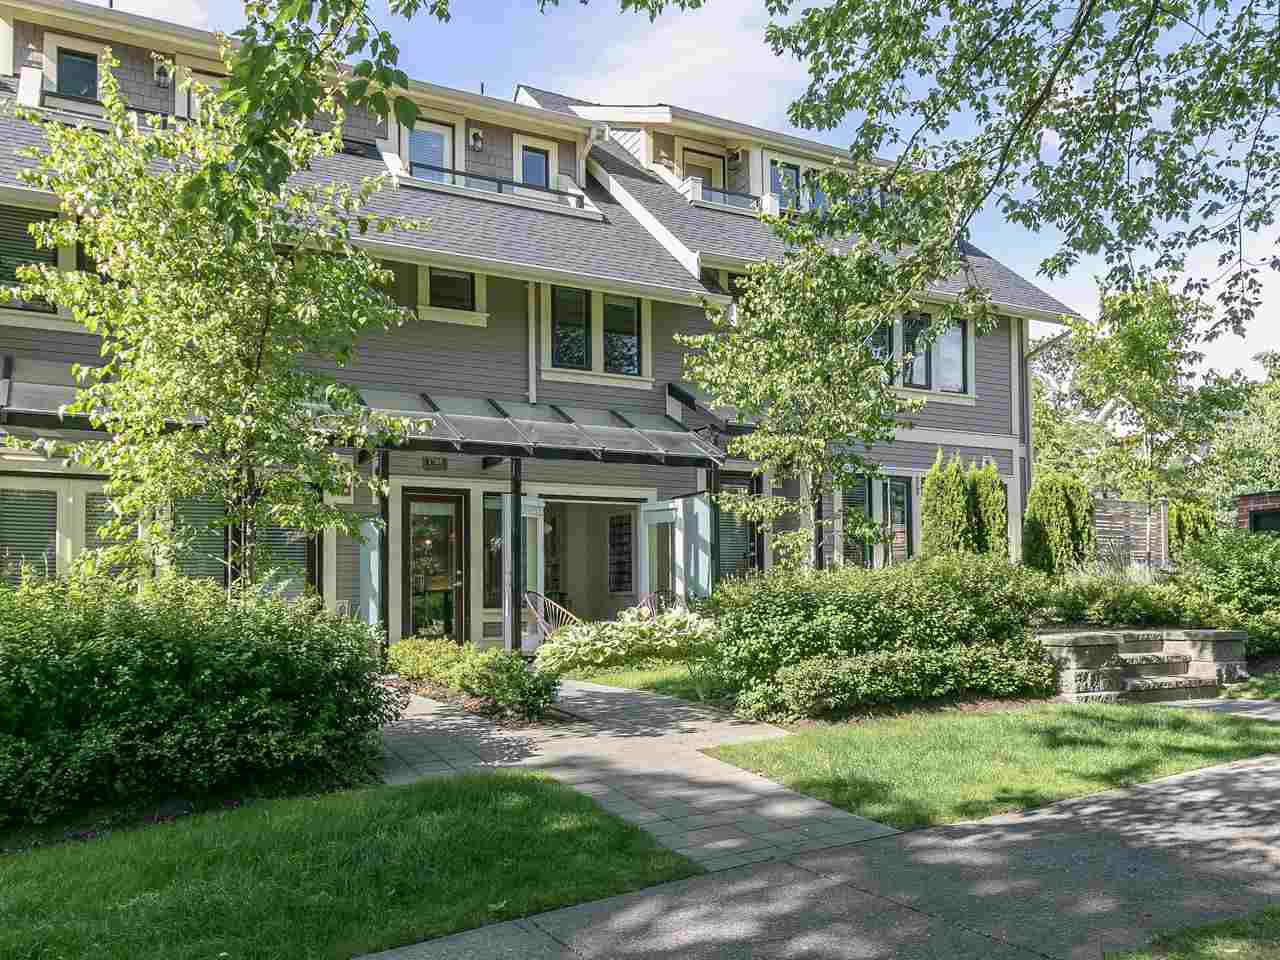 Main Photo: 1785 NAPIER STREET in Vancouver: Grandview VE Townhouse for sale (Vancouver East)  : MLS®# R2079454